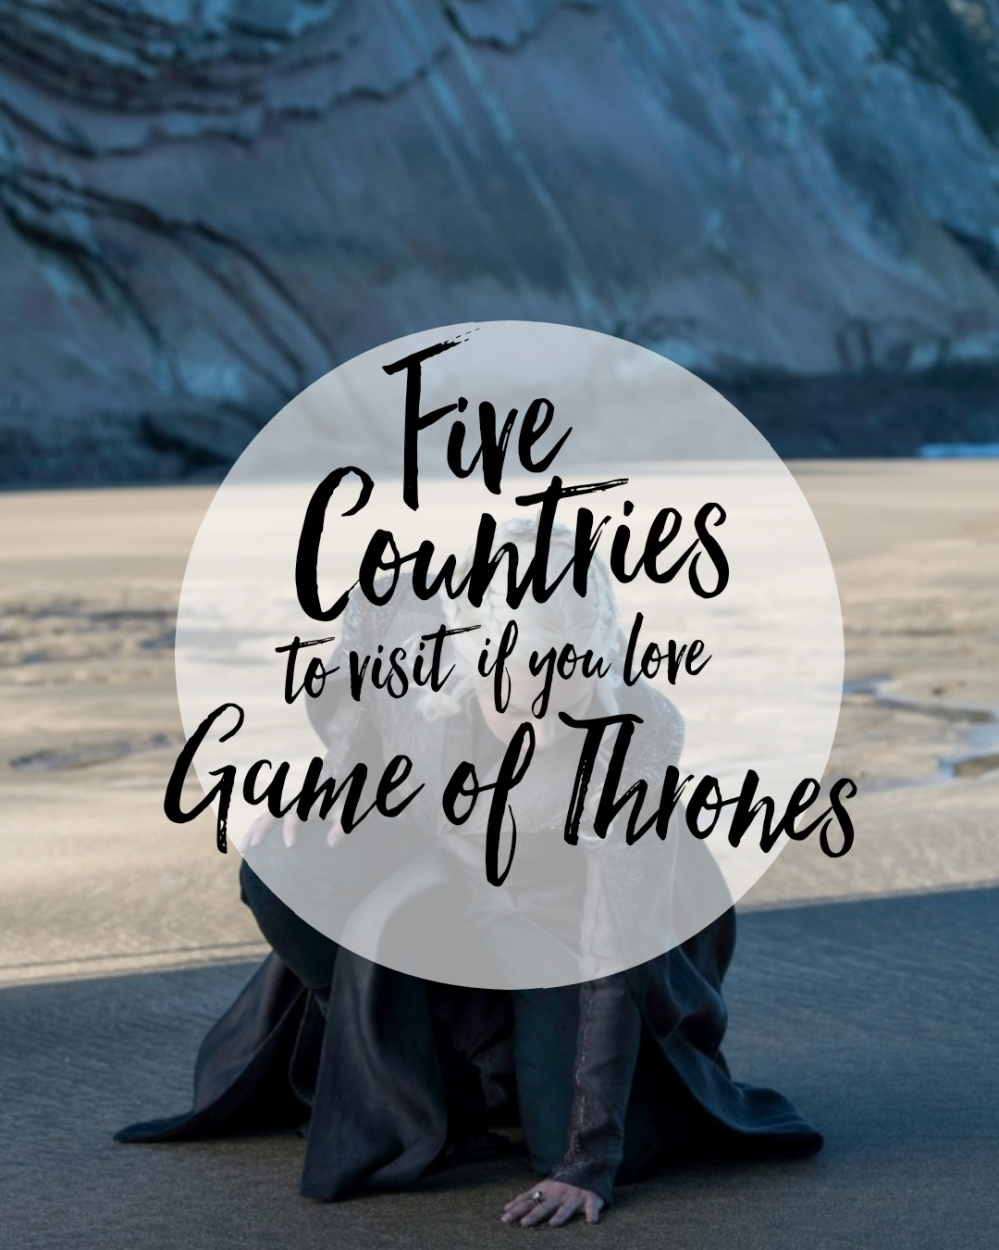 Five Countries to Visit if you Love Game of Thrones